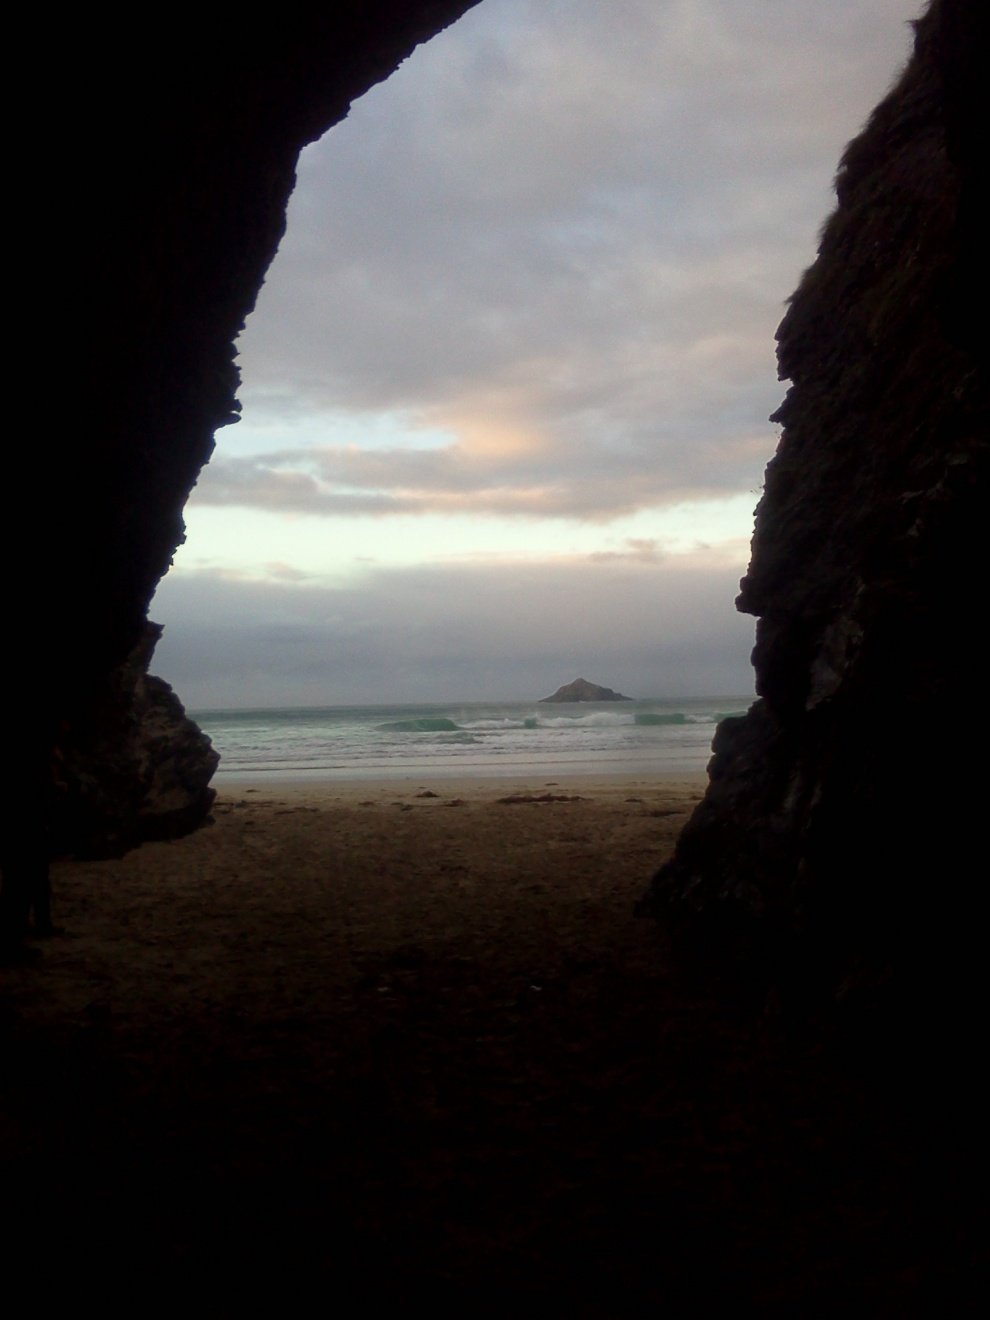 Jamie Hornby's photo of Crantock